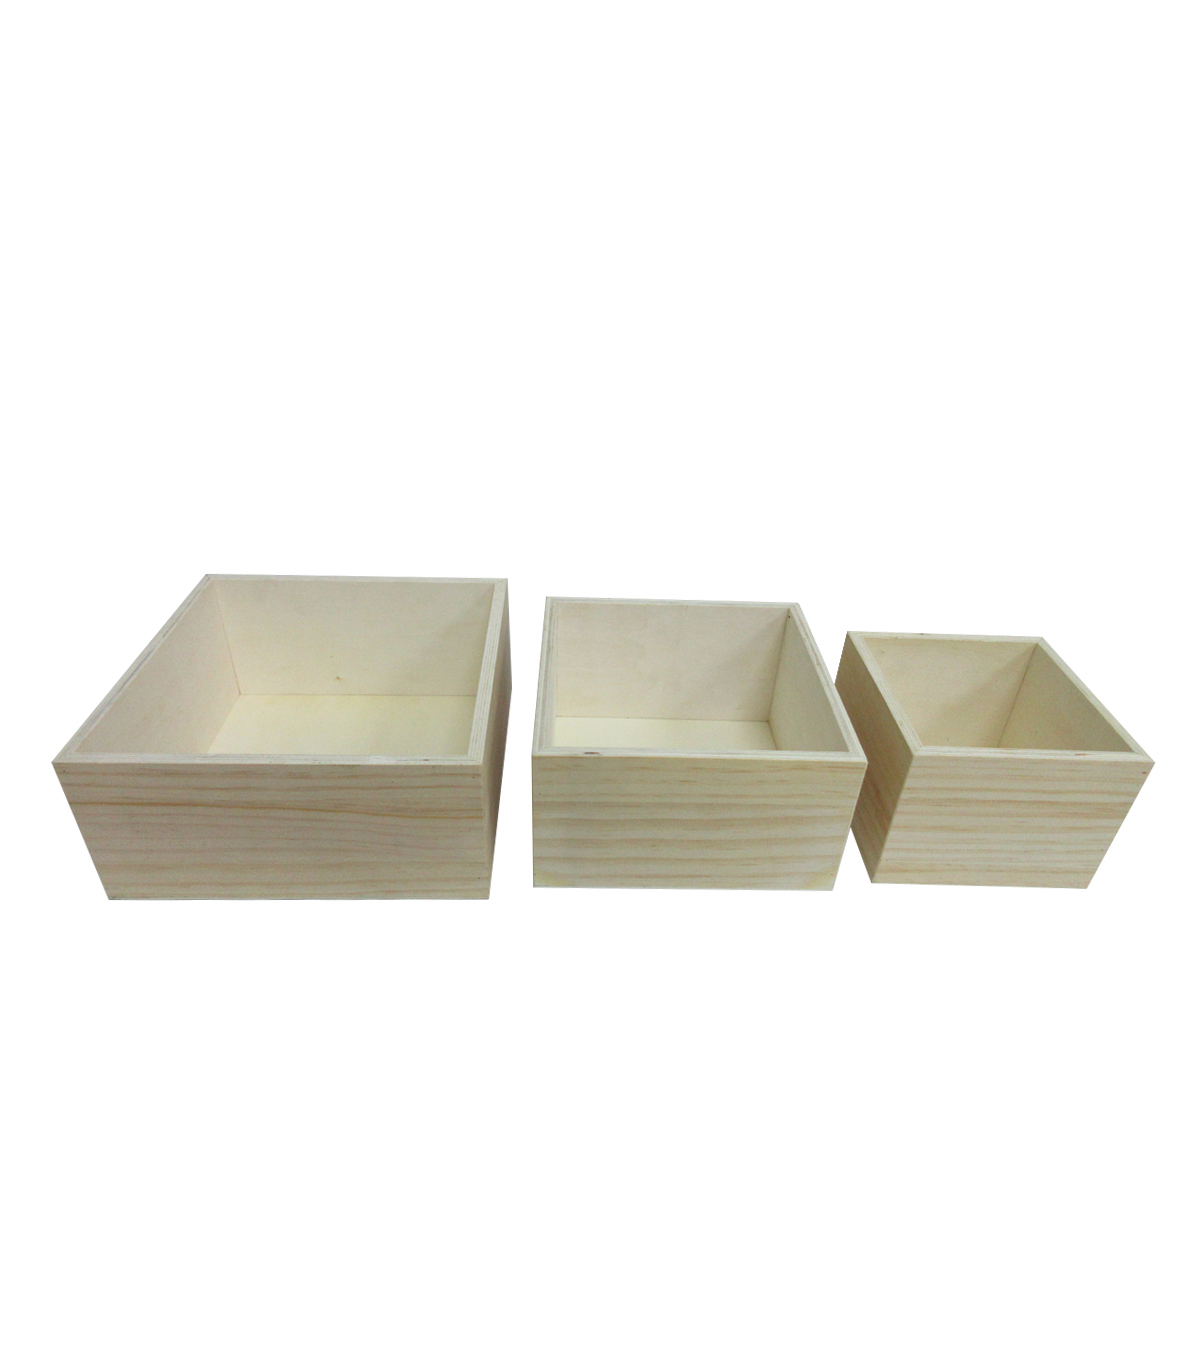 Unfinished Square Wood Boxes-3 Pack